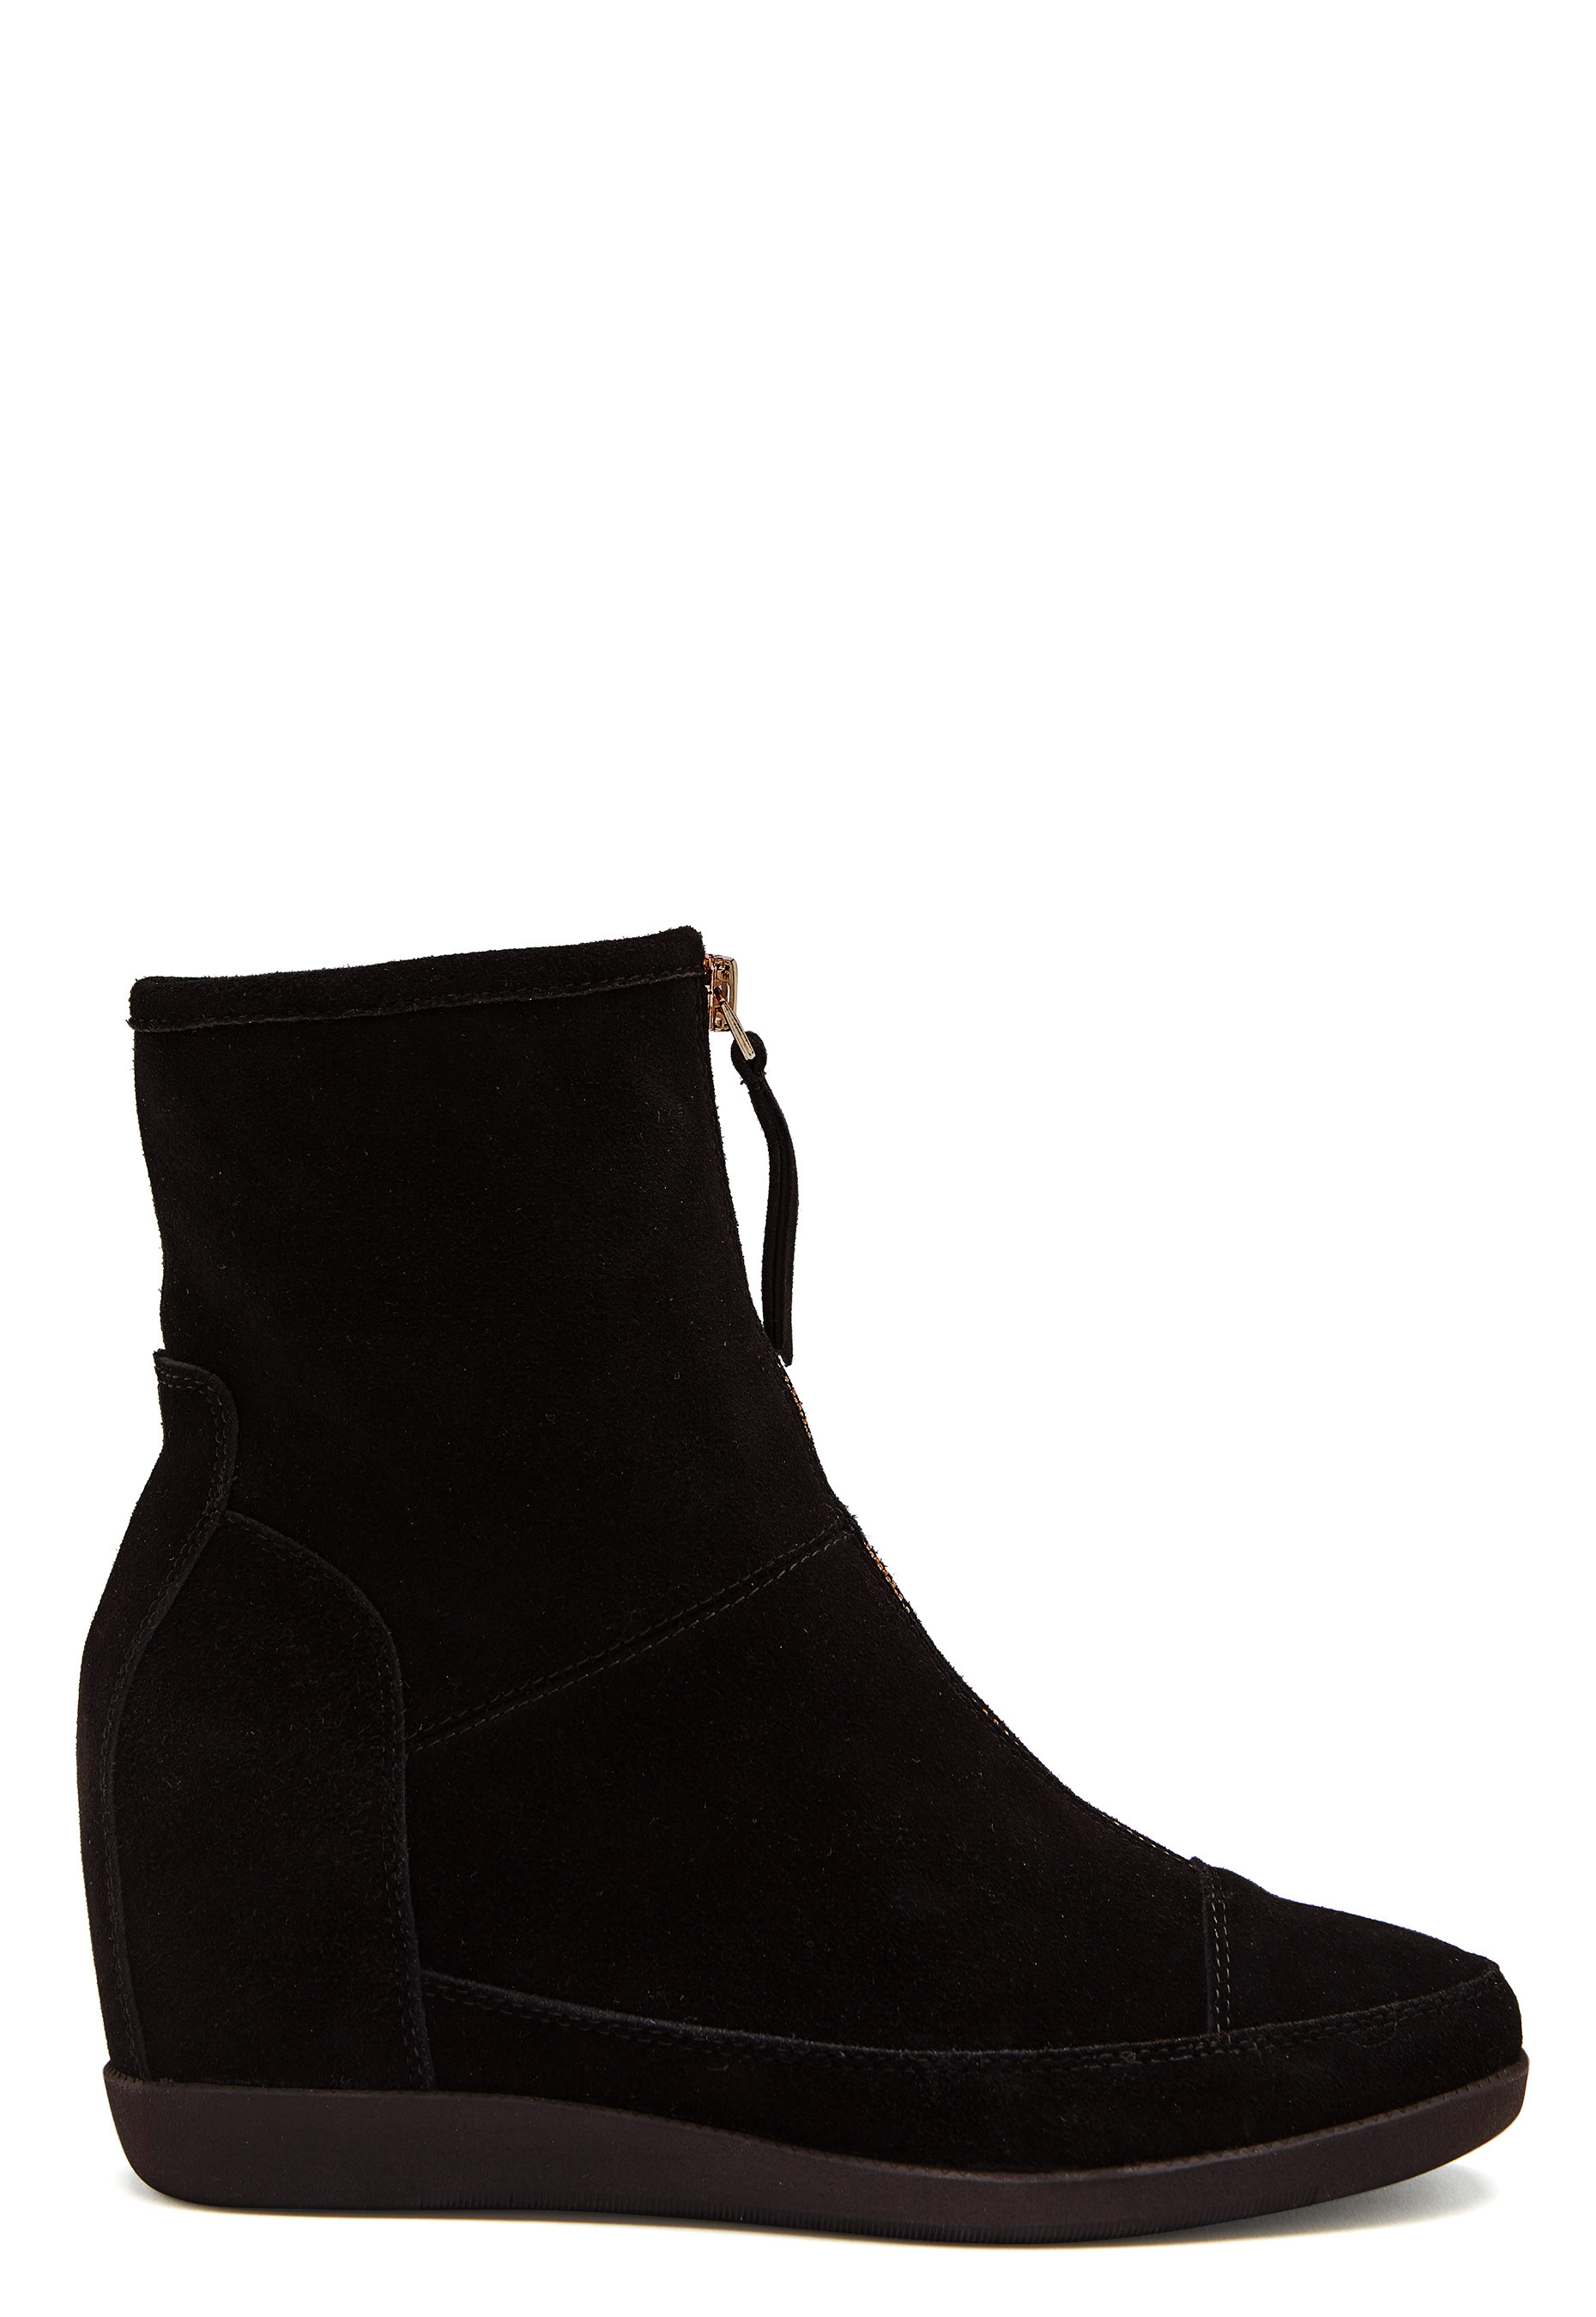 SHOE THE BEAR Emmy Suede Boots 110 Black Bubbleroom